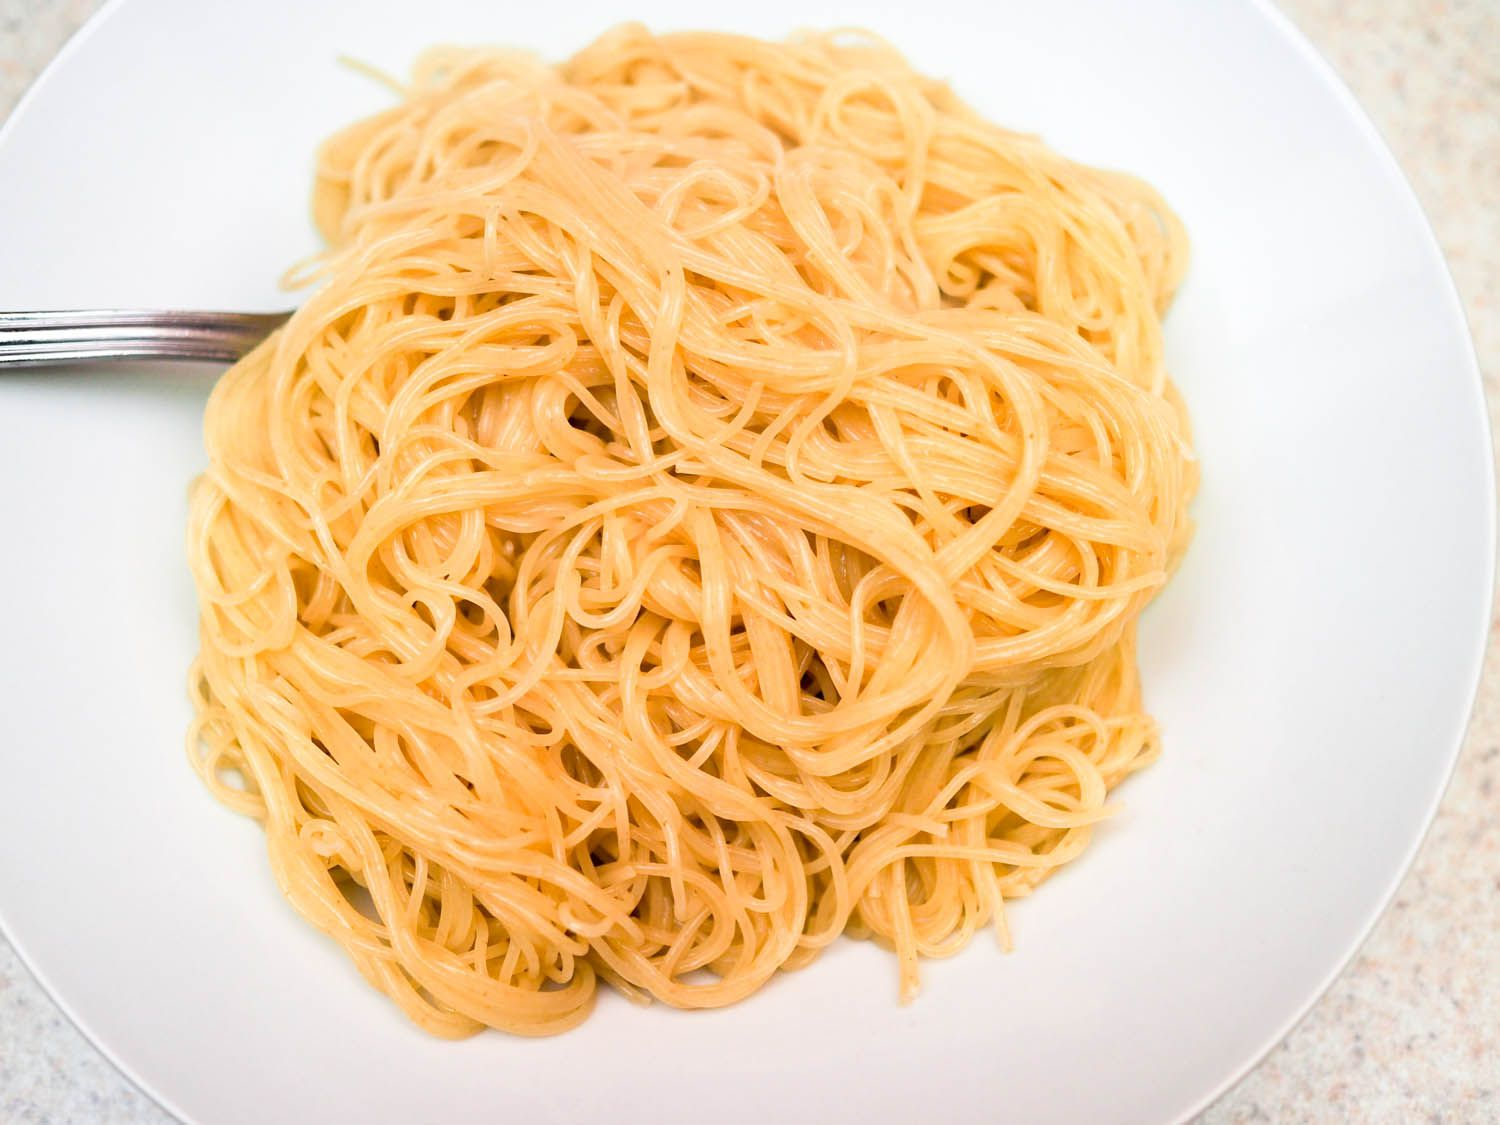 A plate with a pile of angel hair pasta cooked with baking soda.